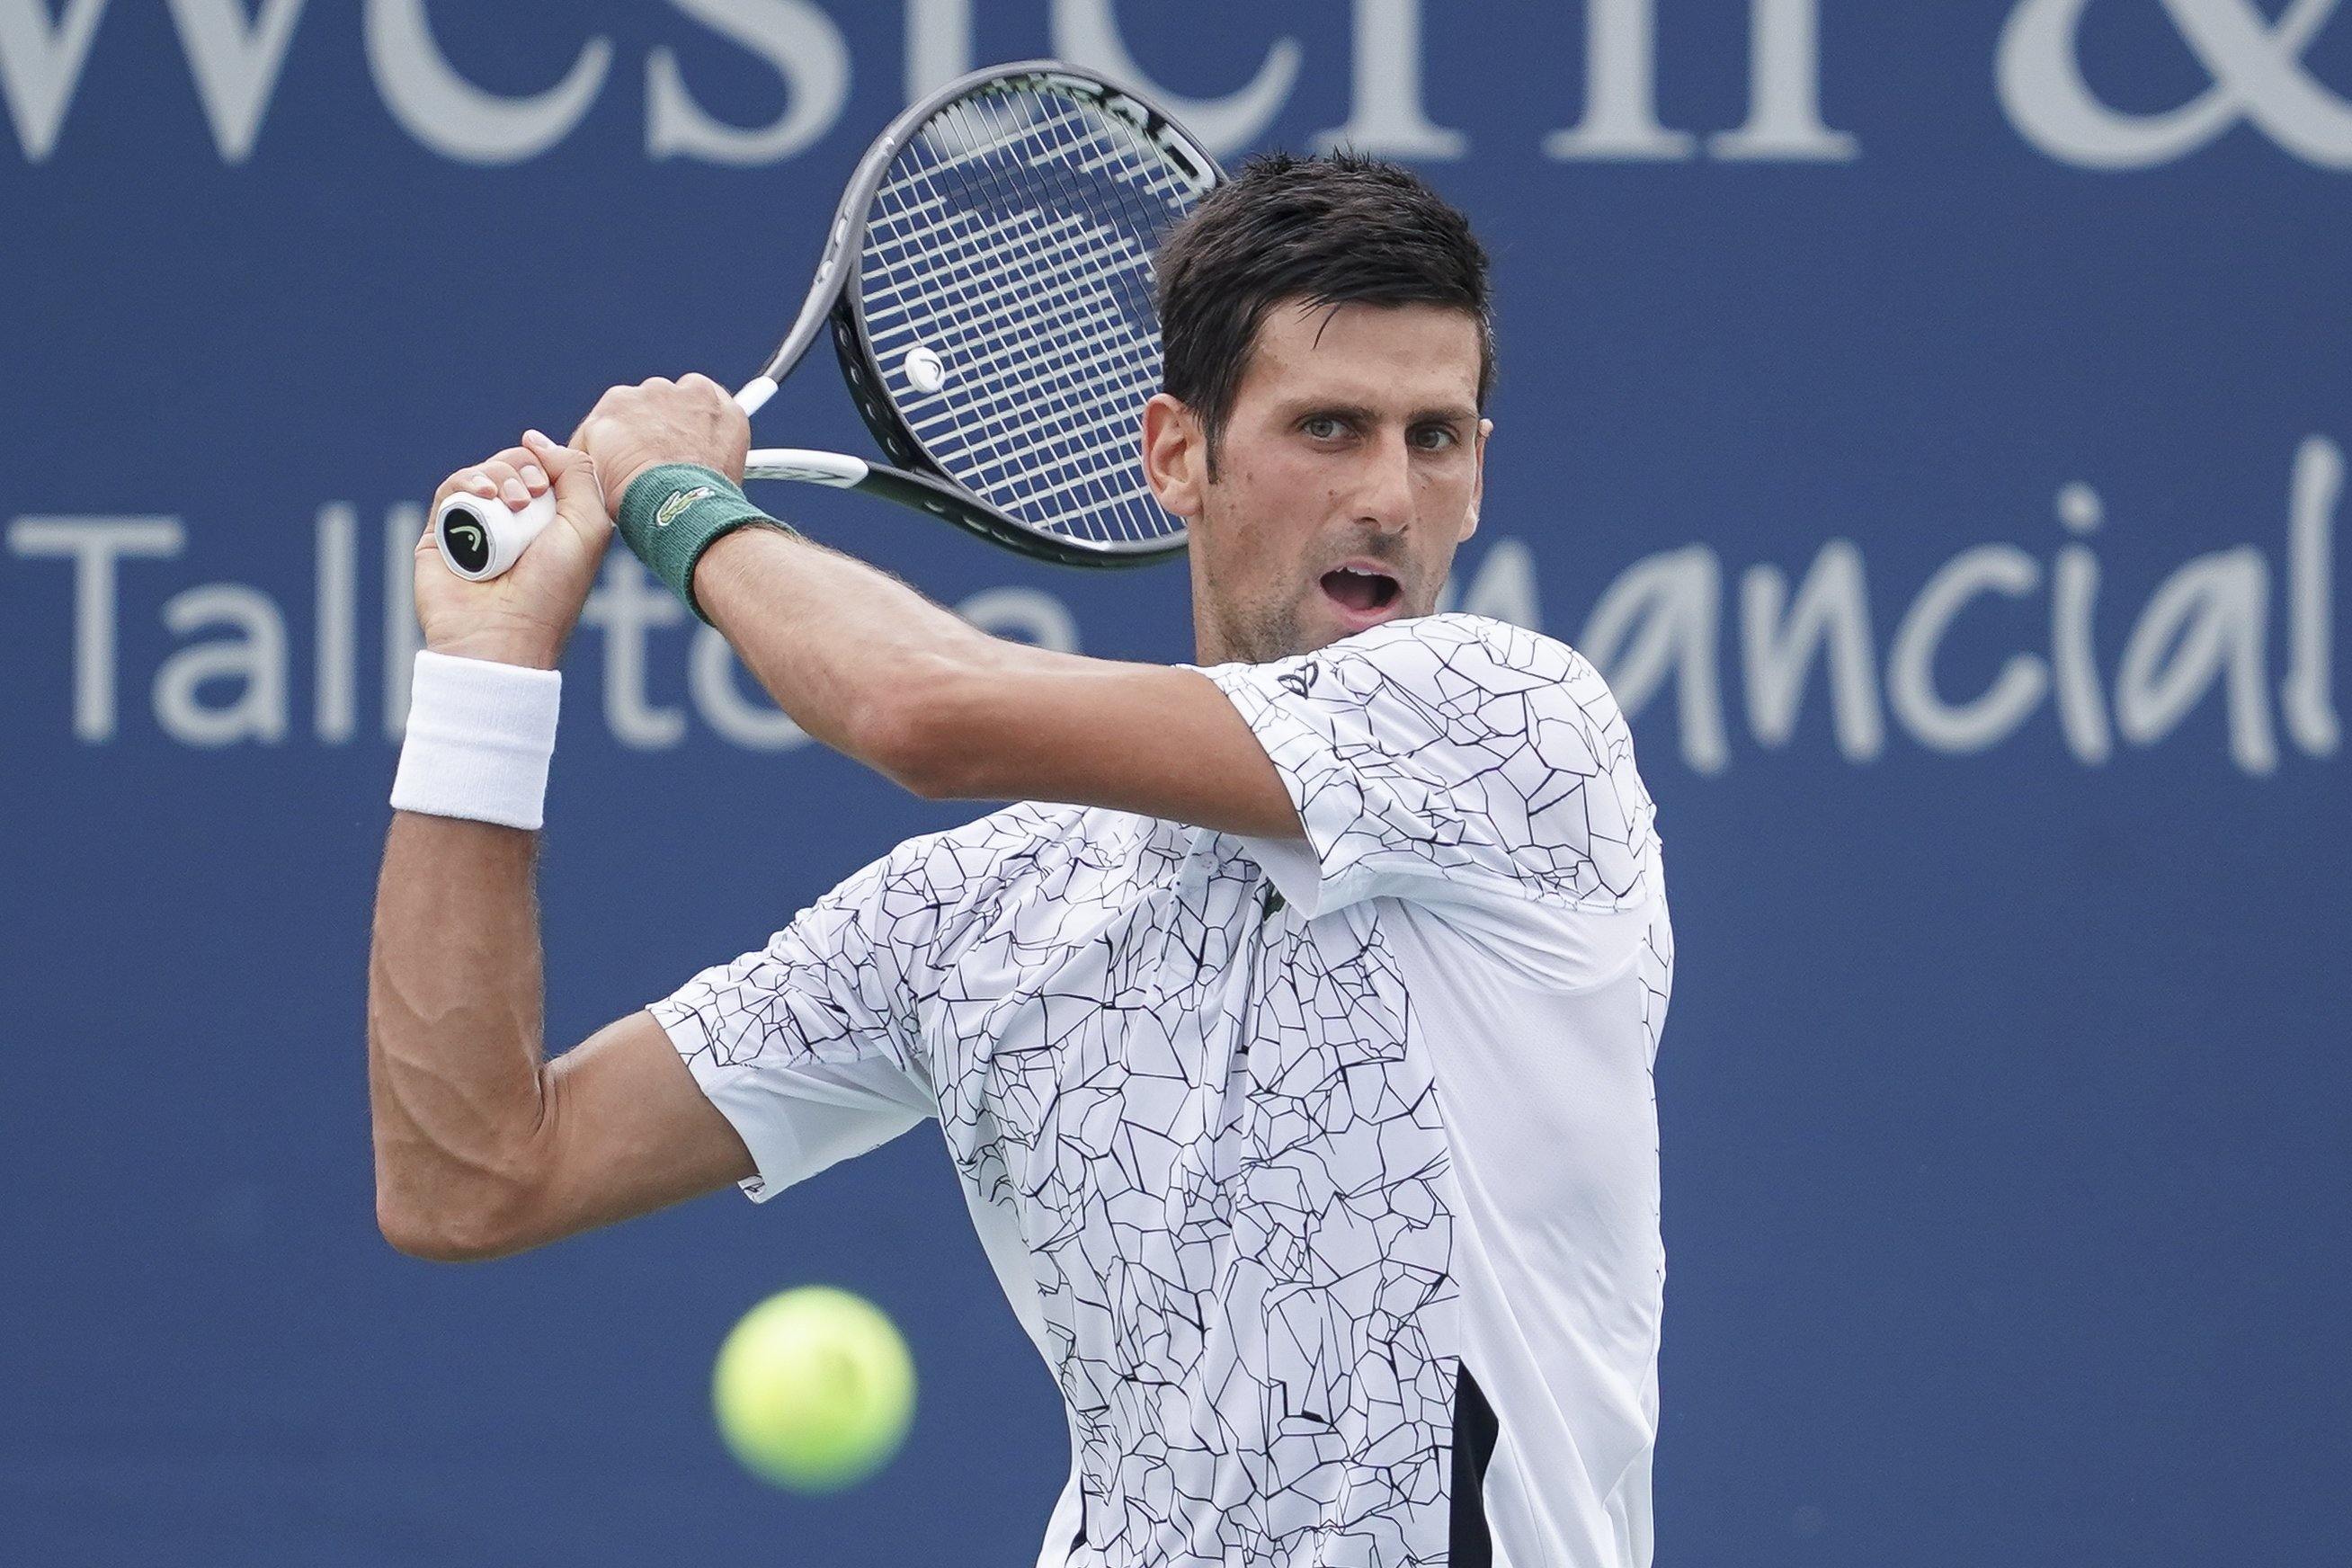 Djokovic Wins In Cincinnati Halep S Match Suspended